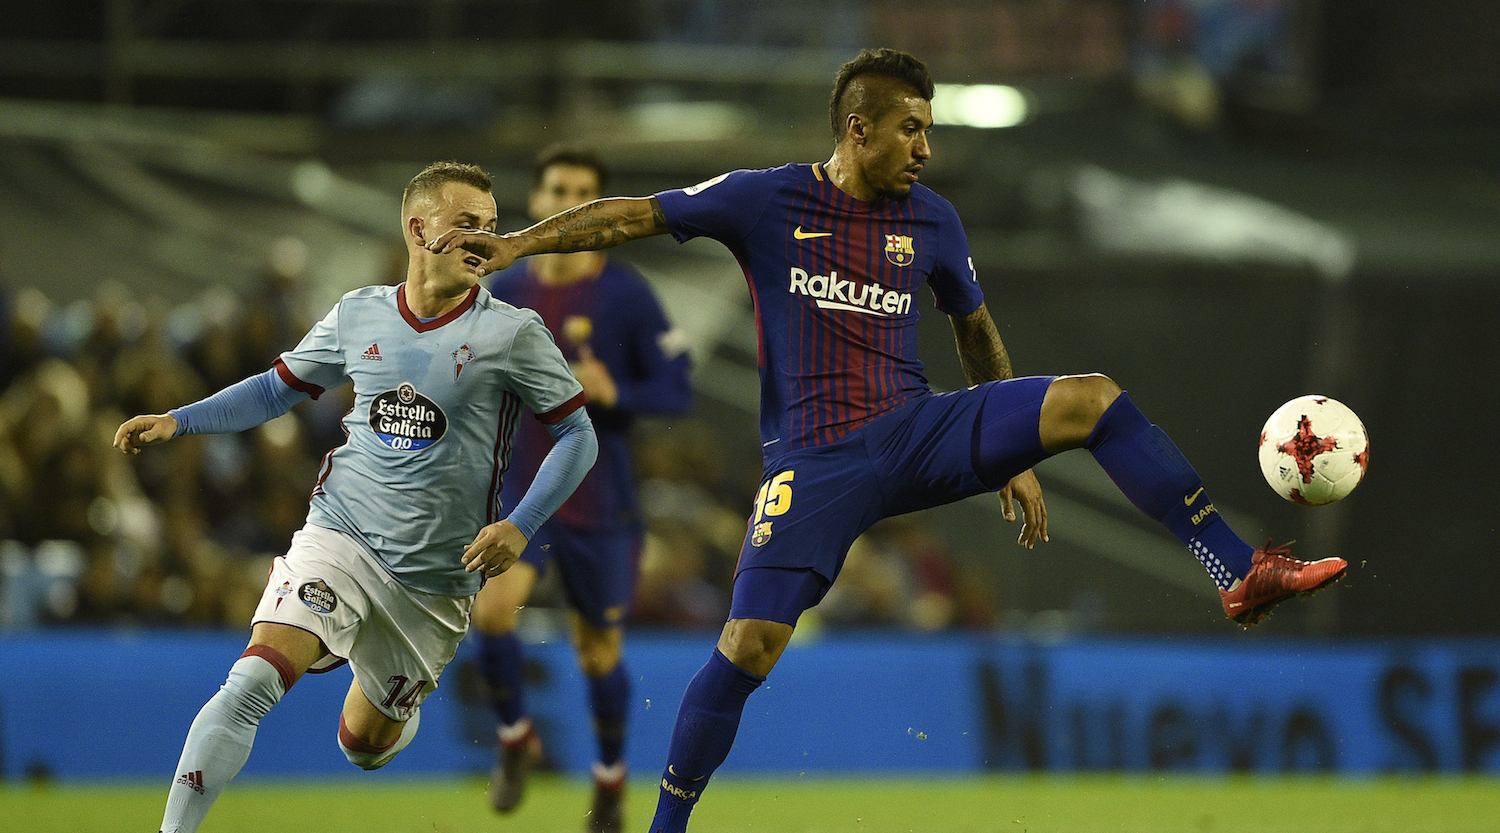 VIGO, SPAIN - JANUARY 04: Stanislav Lobotka of RC Celta de Vigo competes for the ball with Paulinho of FC Barcelona during the Copa del Rey round of 16 first leg match between RC Celta de Vigo and FC Barcelona at Municipal Balaidos on January 4, 2018 in Vigo, Spain. (Photo by Octavio Passos/Getty Images)